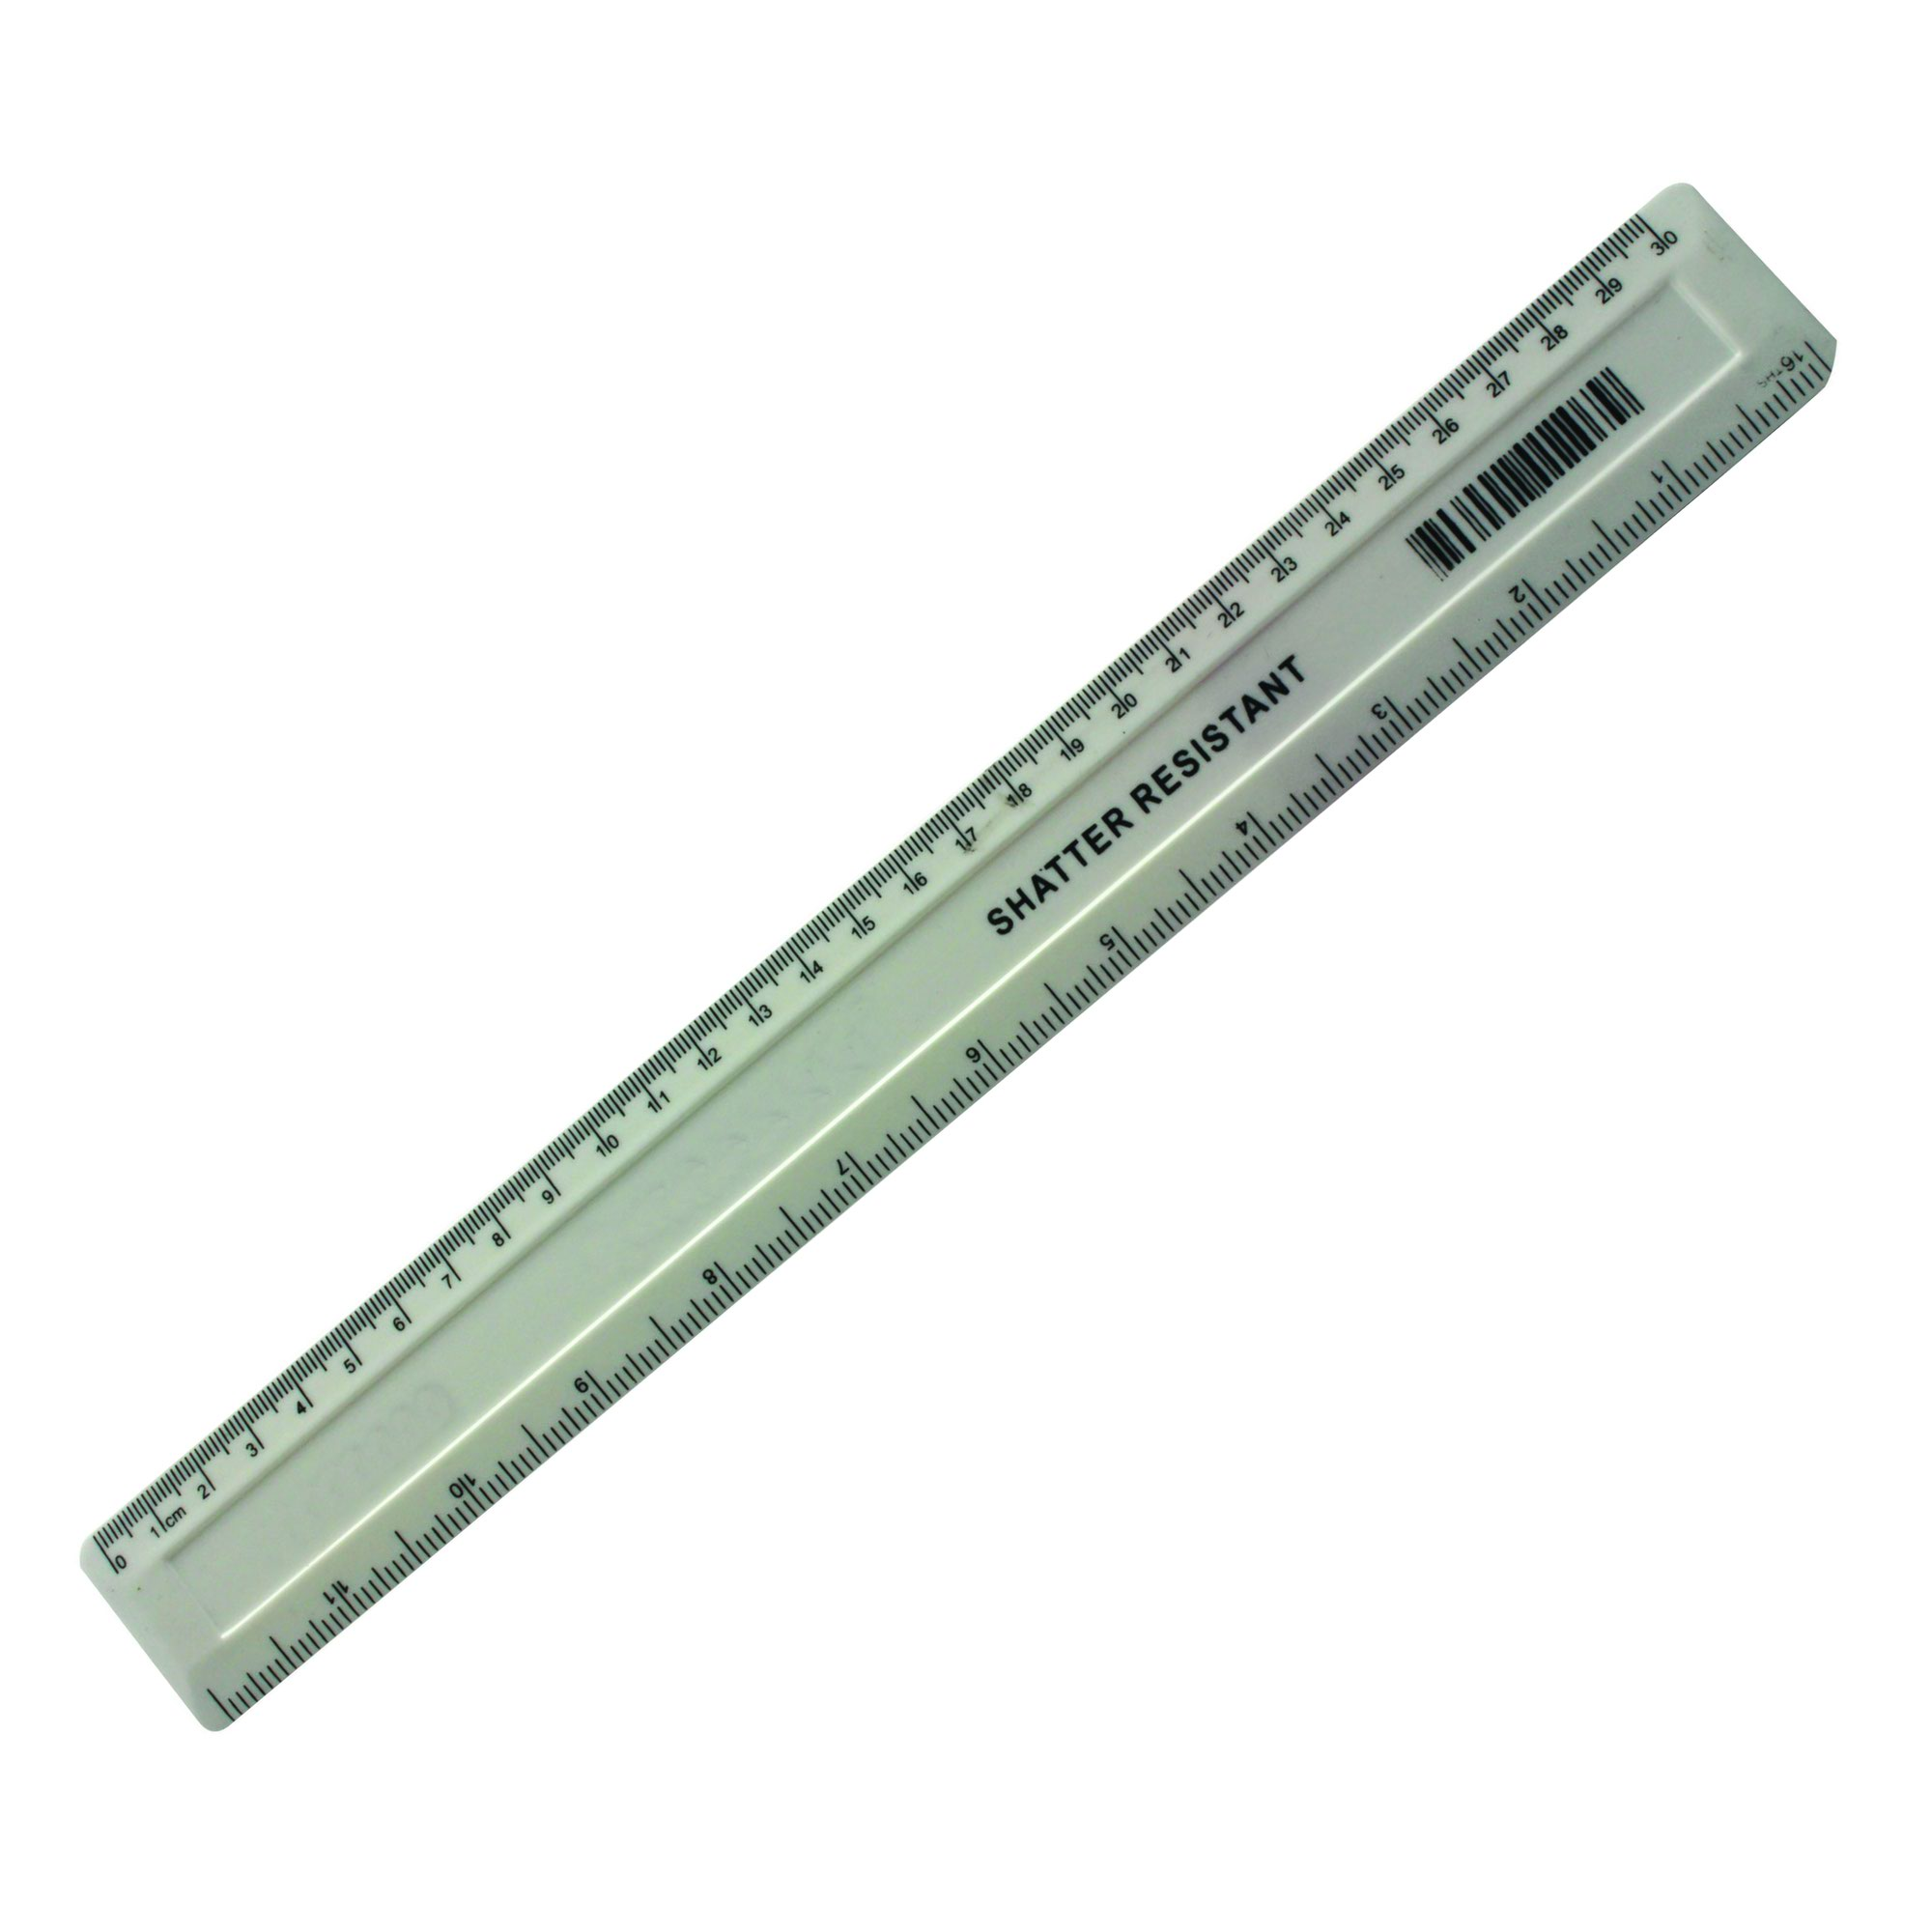 Value Plastic Shatter Resistant Ruler 300mm White